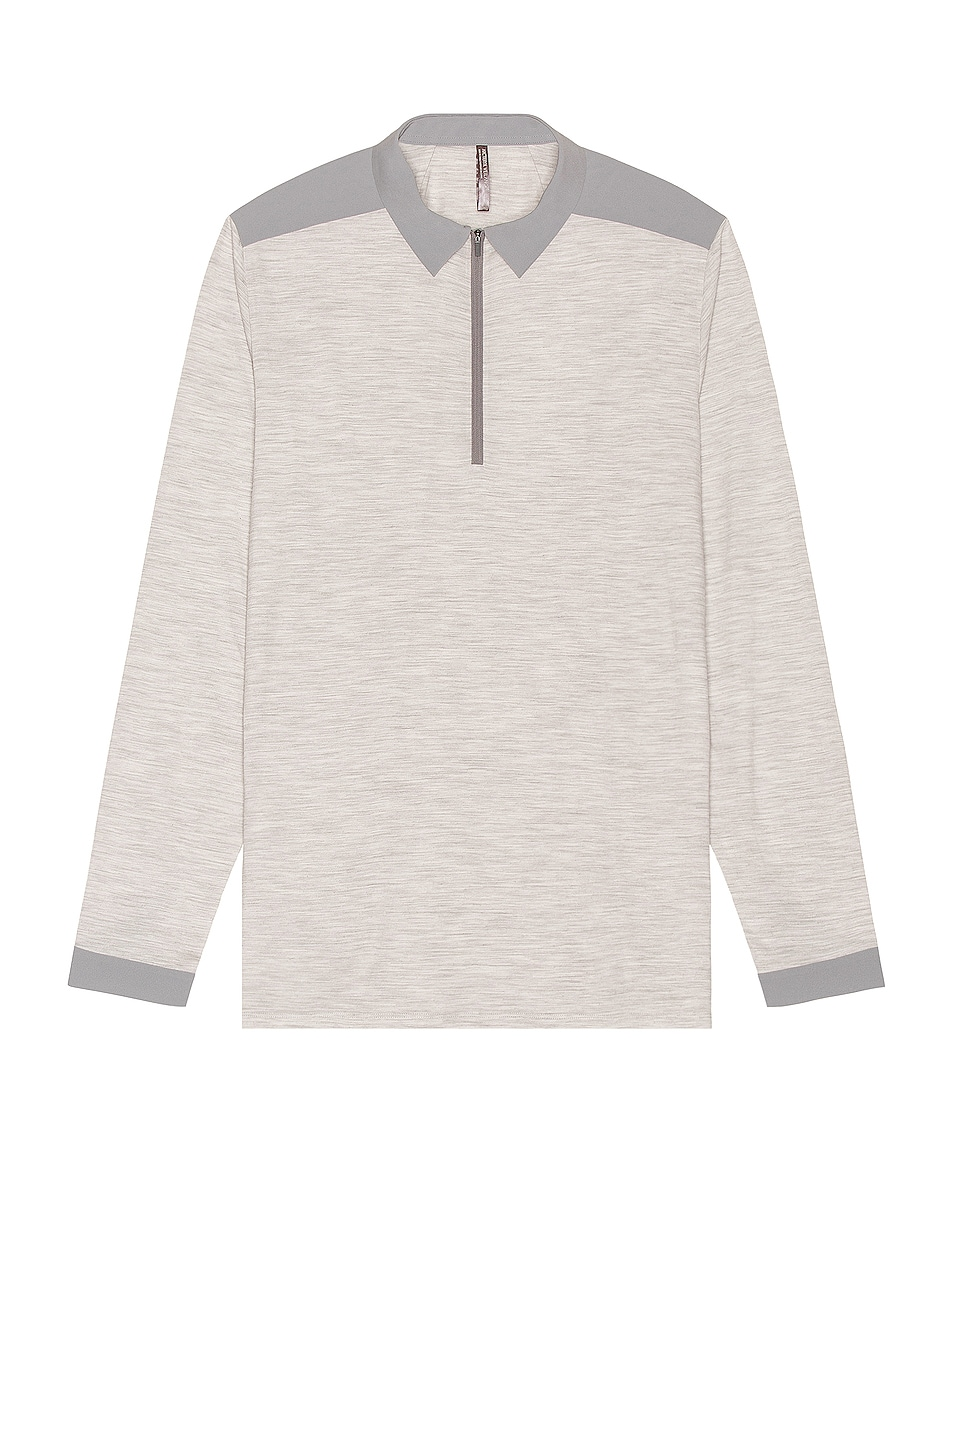 Image 1 of Veilance Frame Long Sleeve Polo in Light Grey Heather